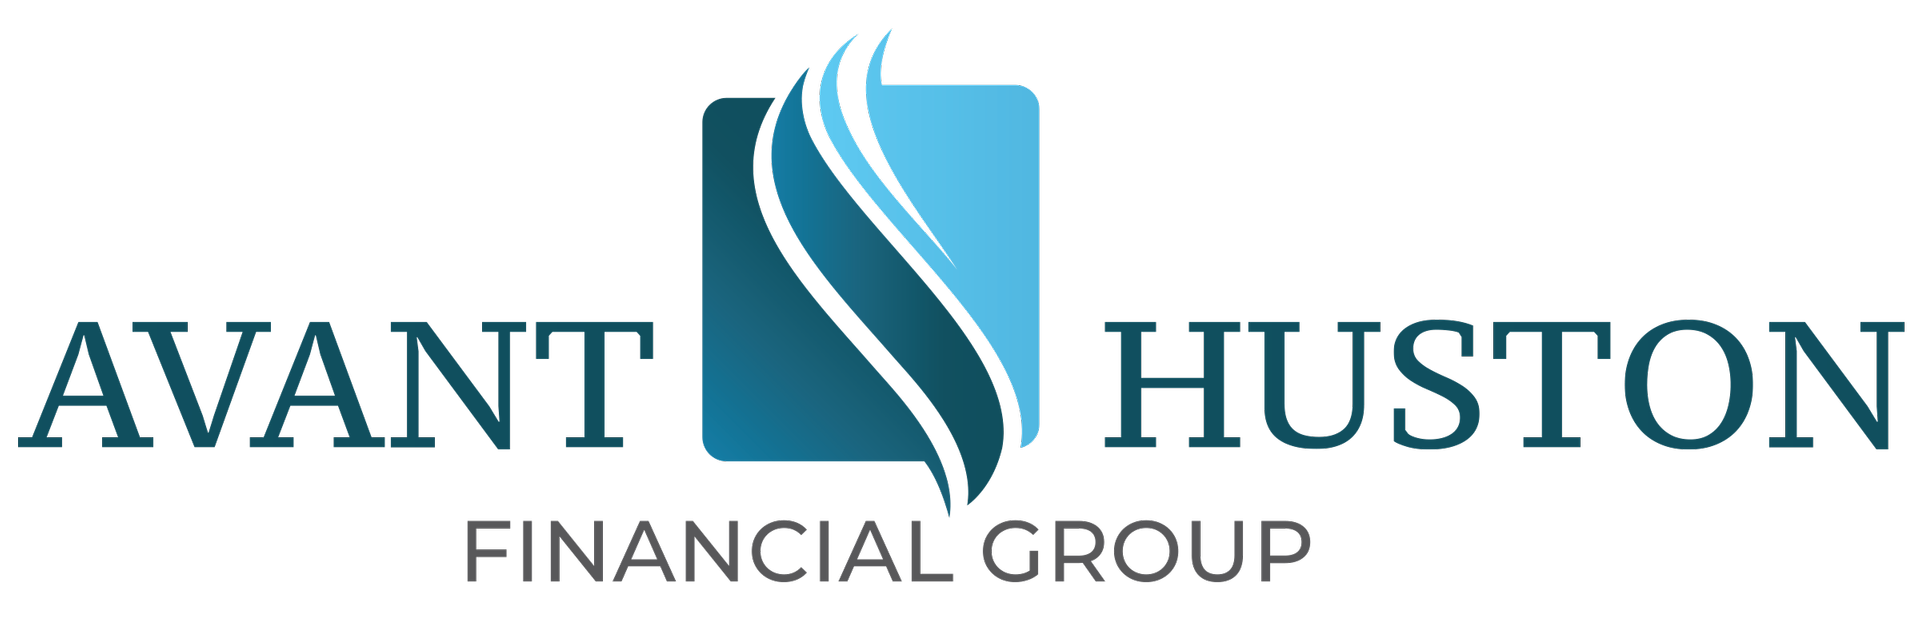 Avant Huston Financial Group